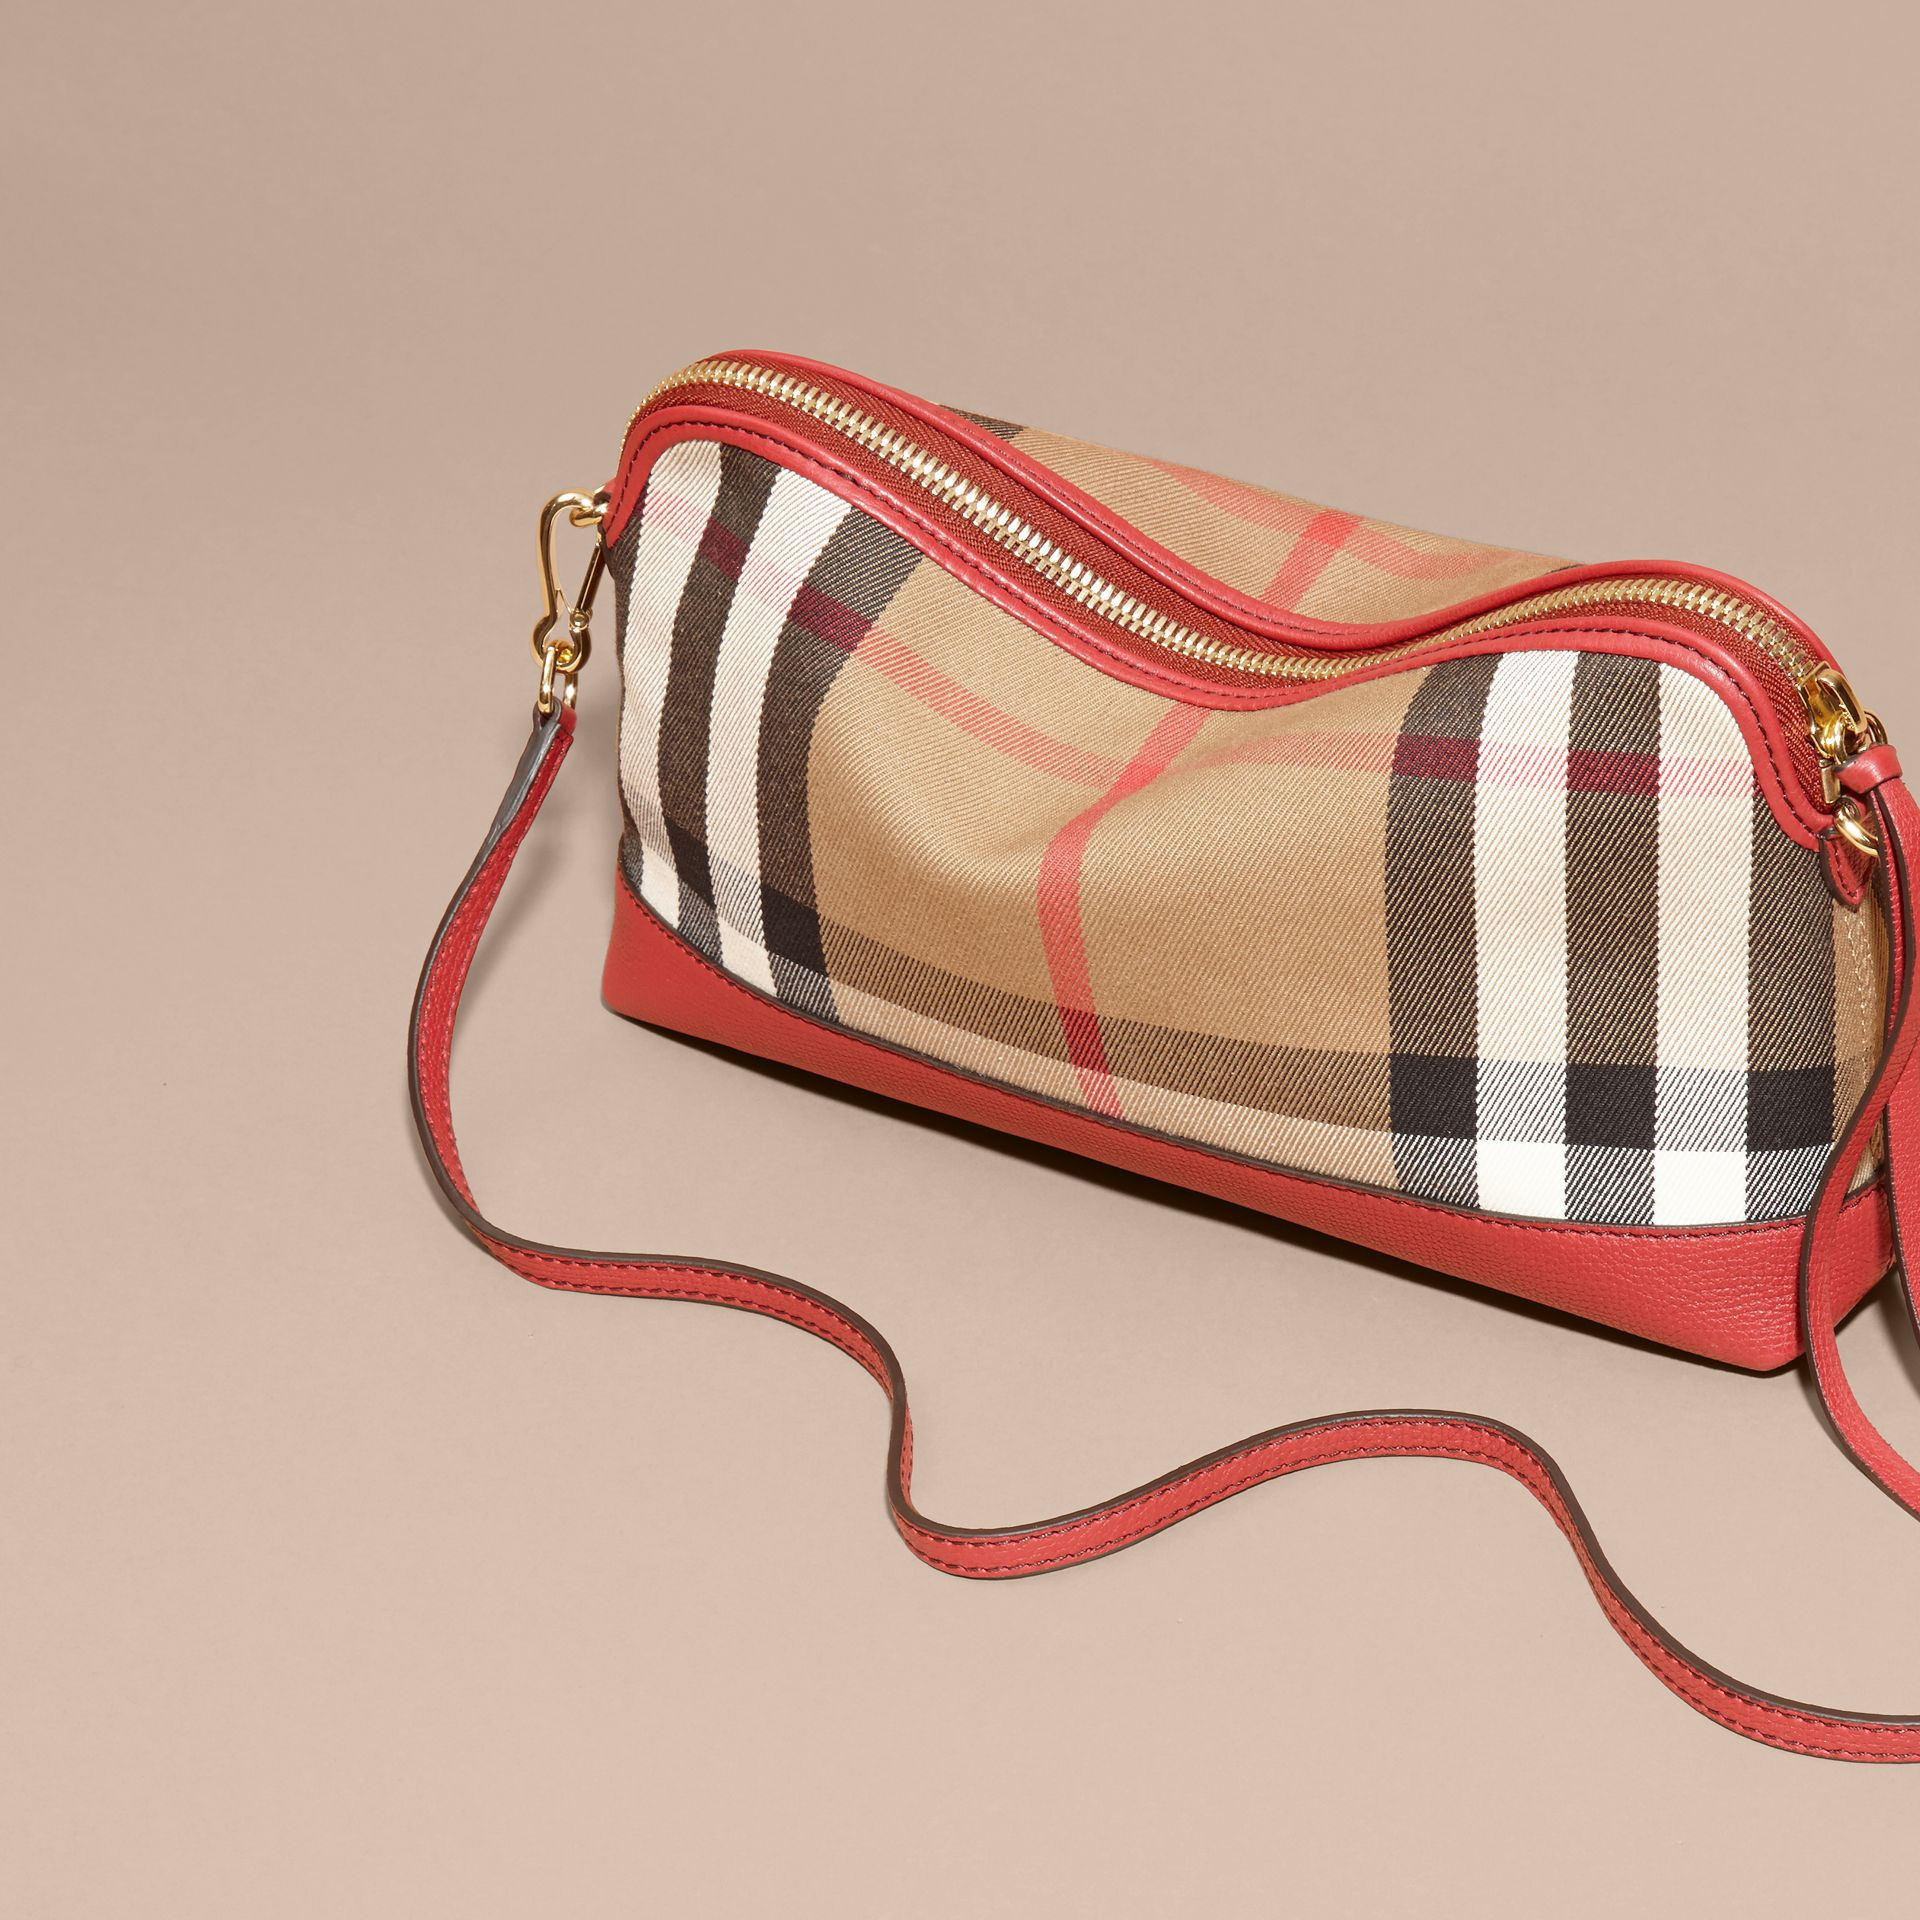 House Check and Leather Clutch Bag in Russet Red - Women | Burberry - gallery image 5